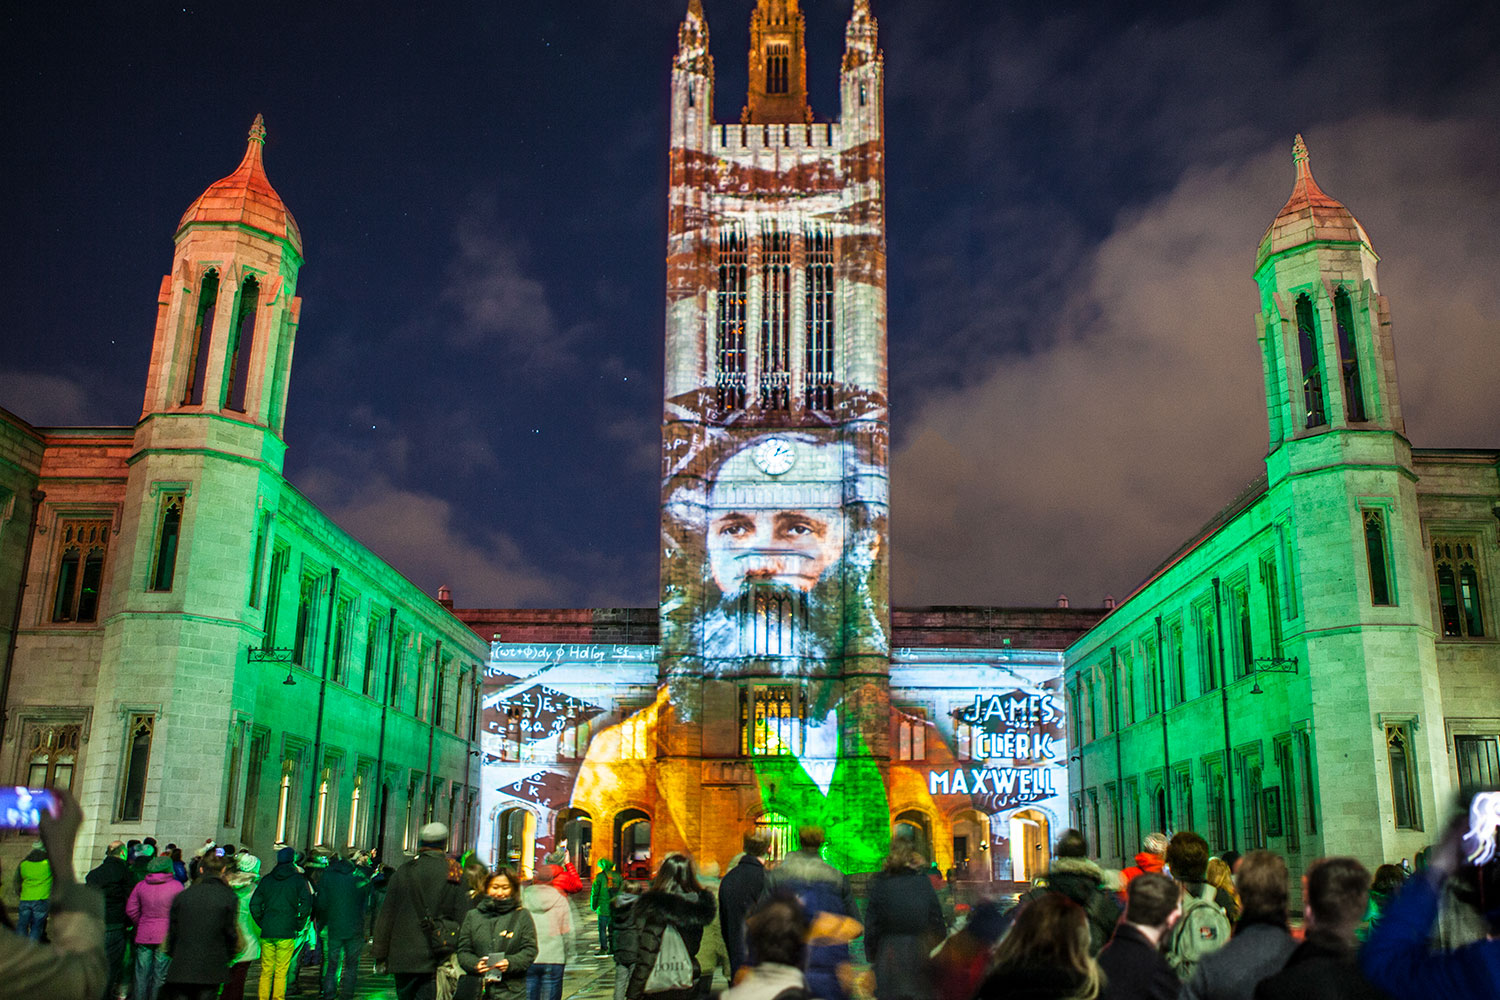 Aberdeen projection, mapping projection, Christmas show, street projection